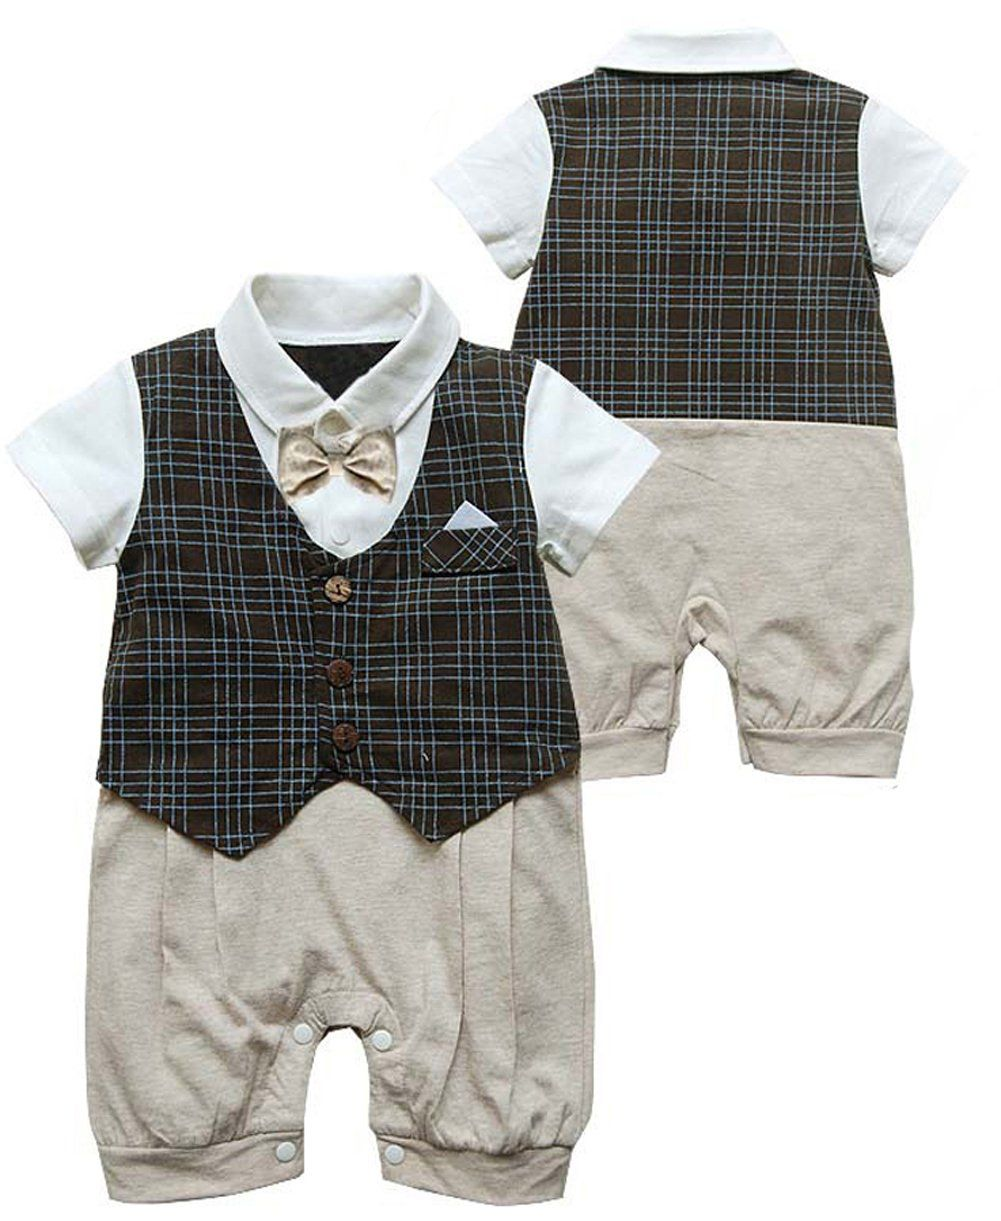 1ff629726 Infant Toddler Boy Baby Bowknot Gentleman Romper Jumpsuit Outfit Plaid  Clothes  Amazon.co.uk  Clothing